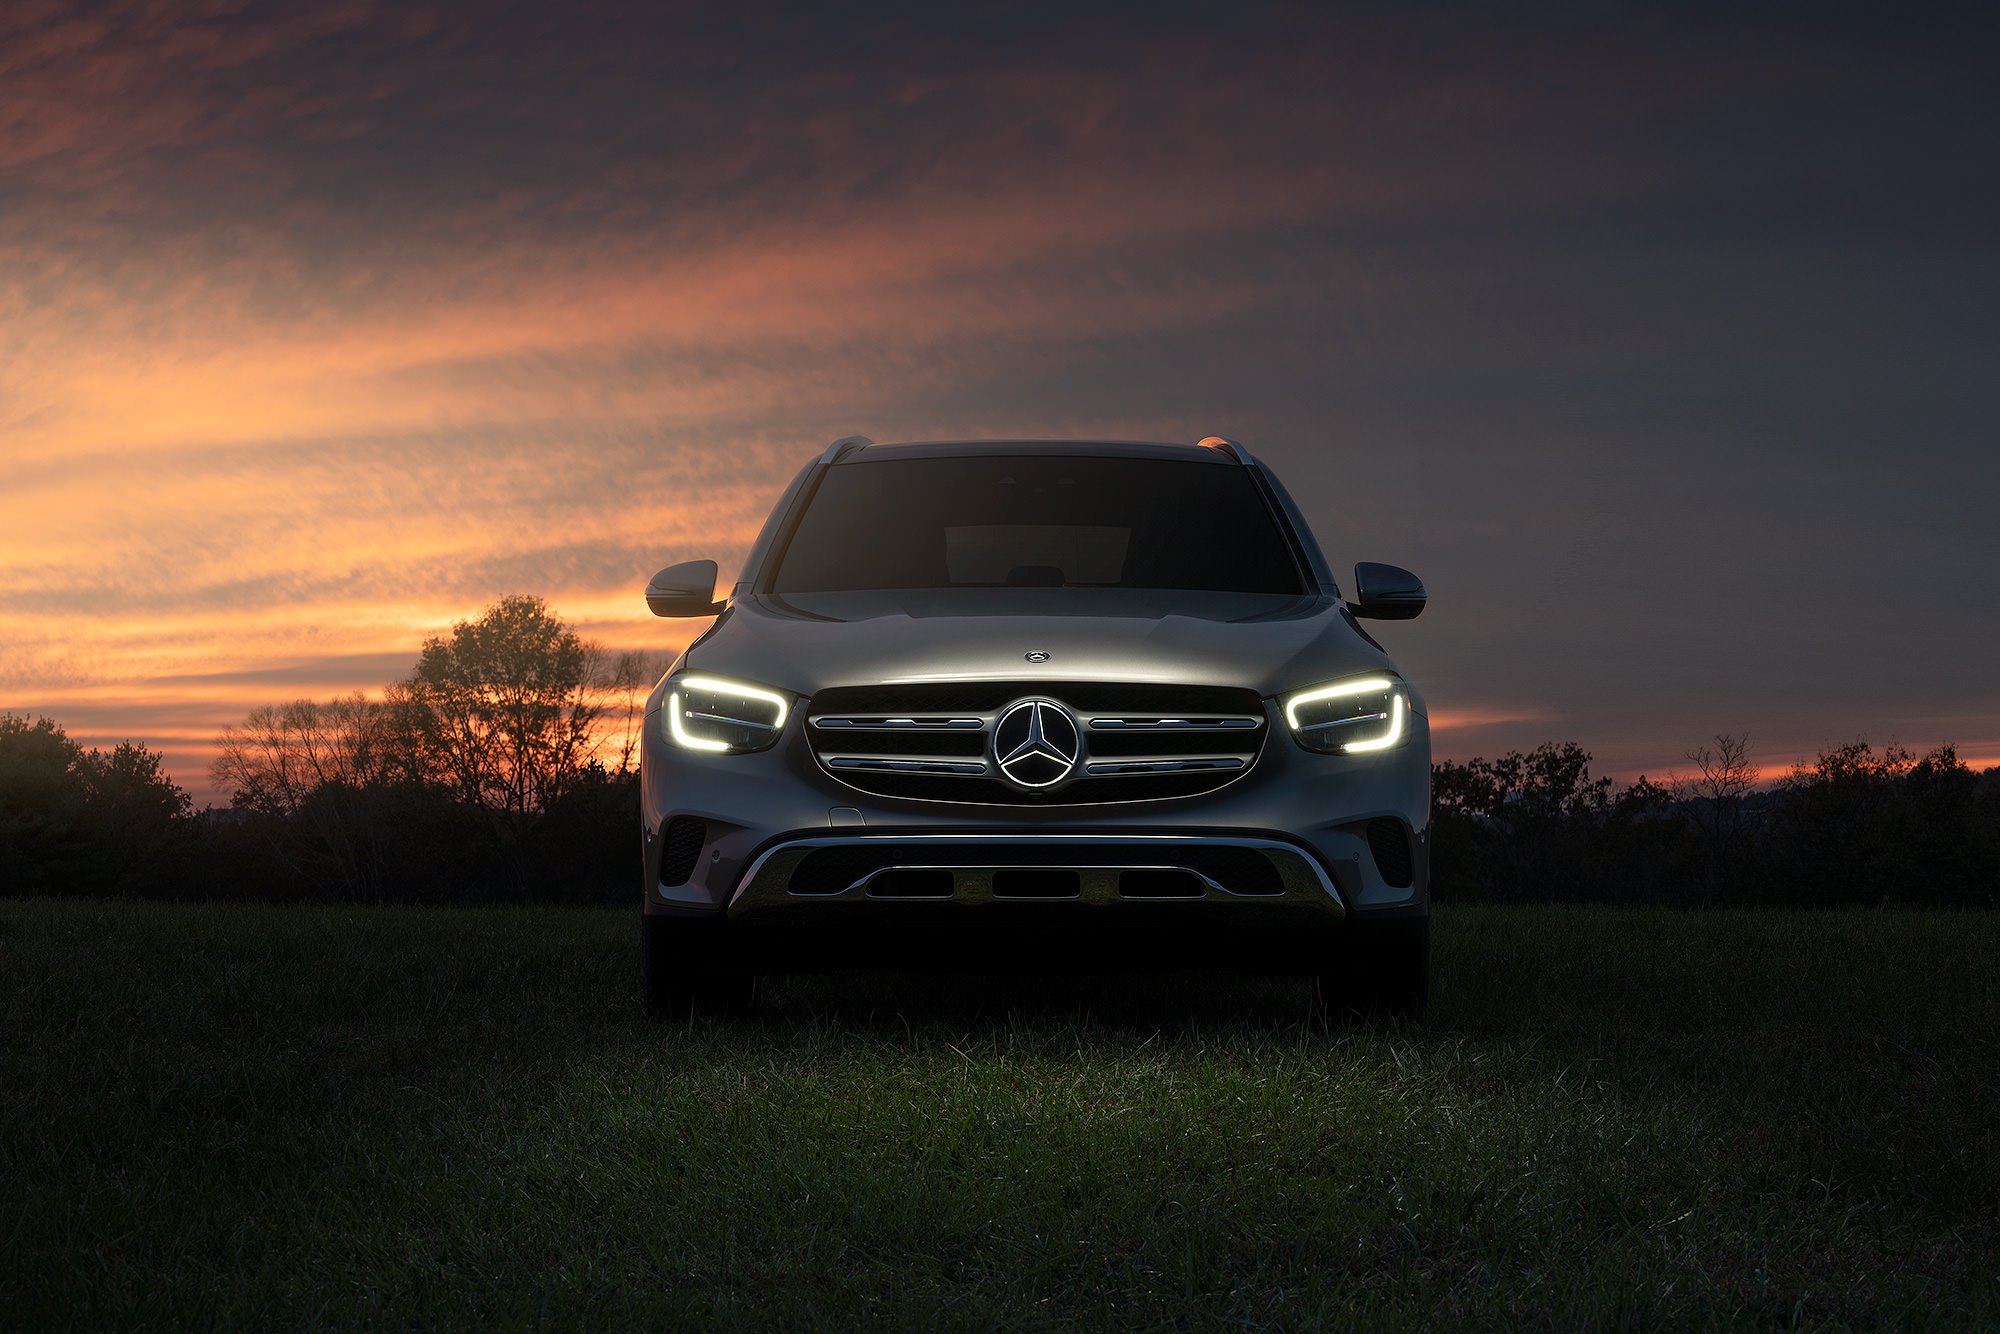 Mercedes-Benz GLC Illuminated Star